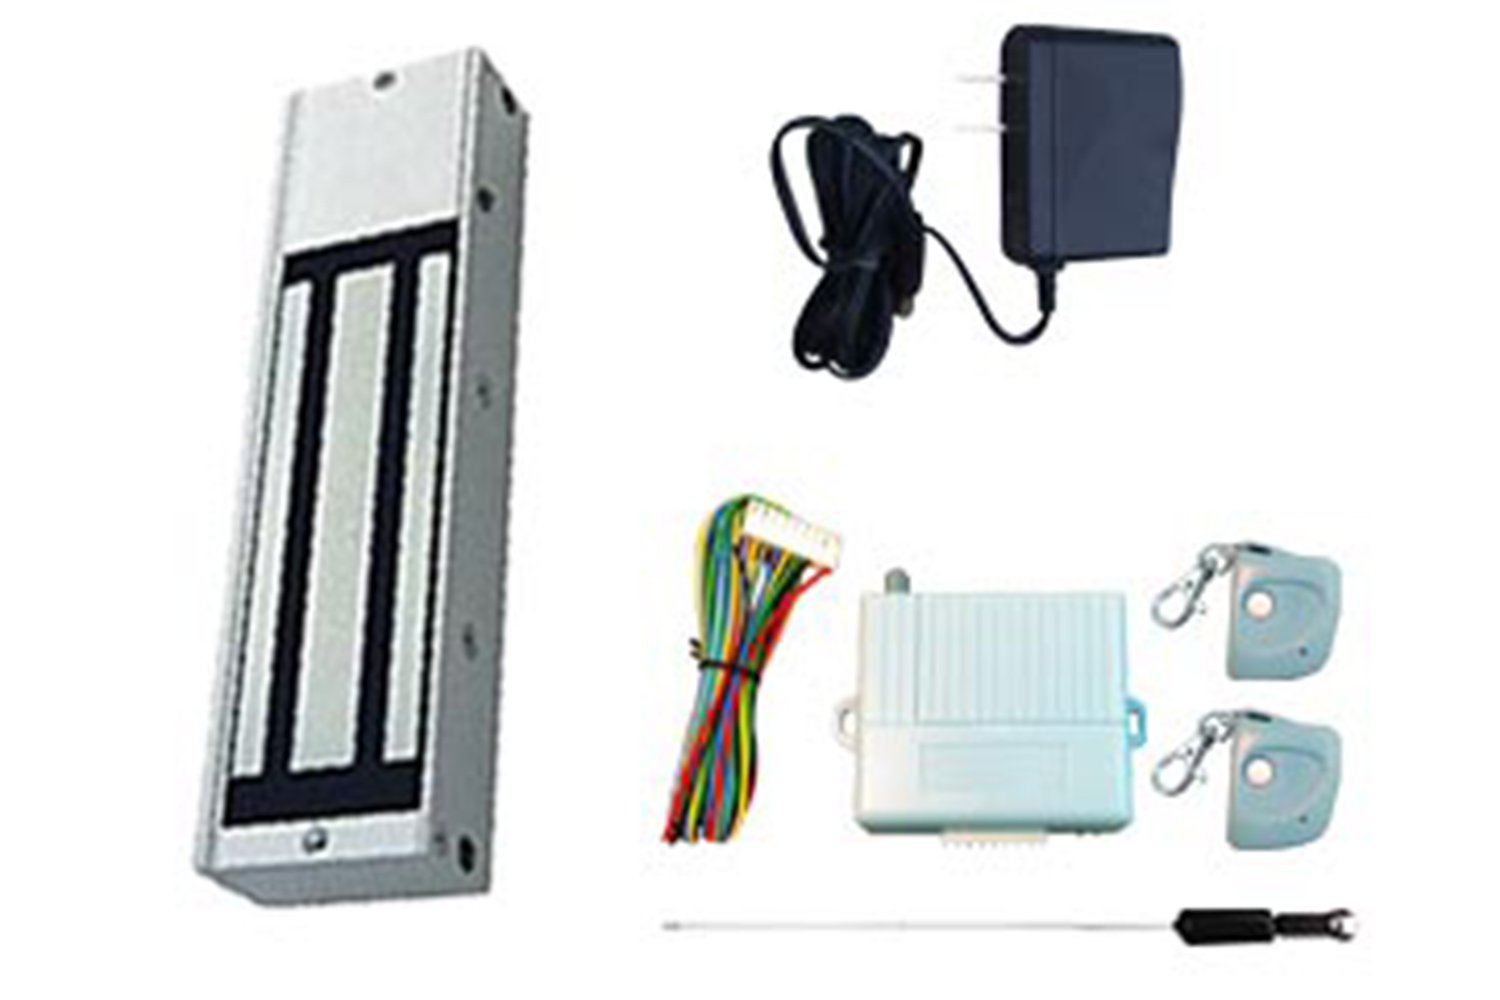 One Door Magnetic Lock Kit 1200Lbs Hold Force with Remote Control Transmitters & Receiver